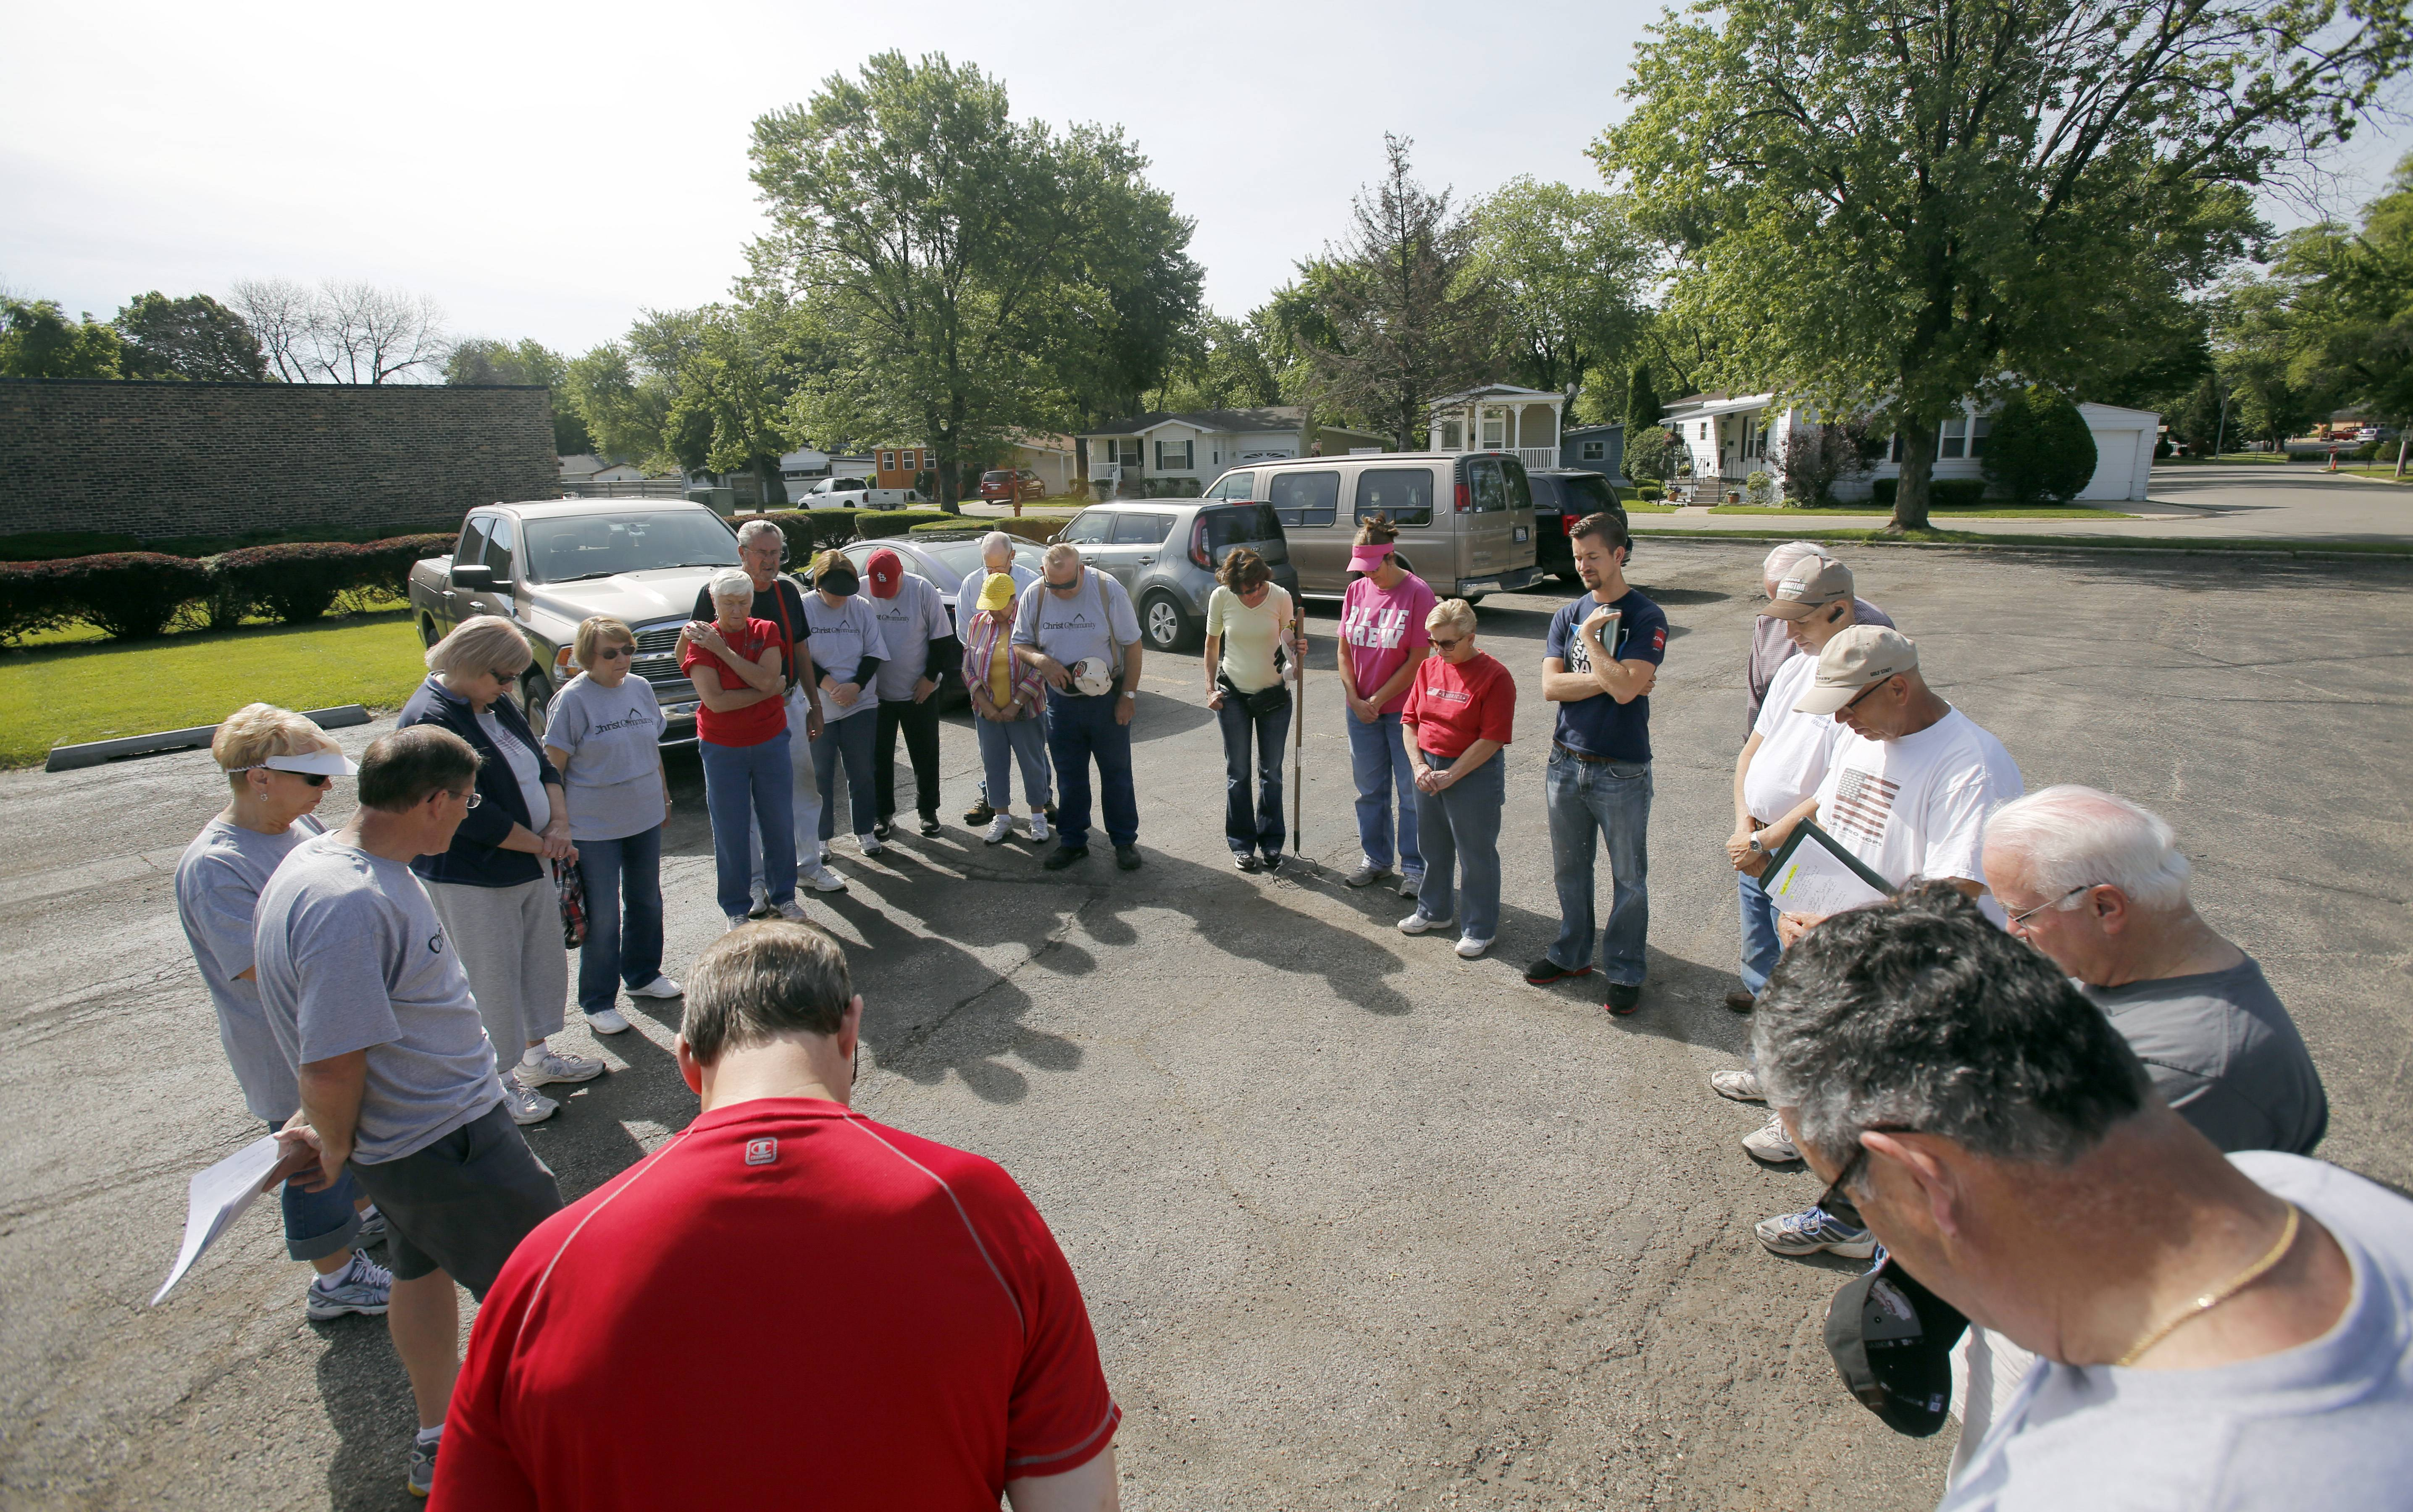 A group from Christ Community Church in St. Charles prays in the parking lot before heading out to help people in Willow Lake Estates in Elgin.